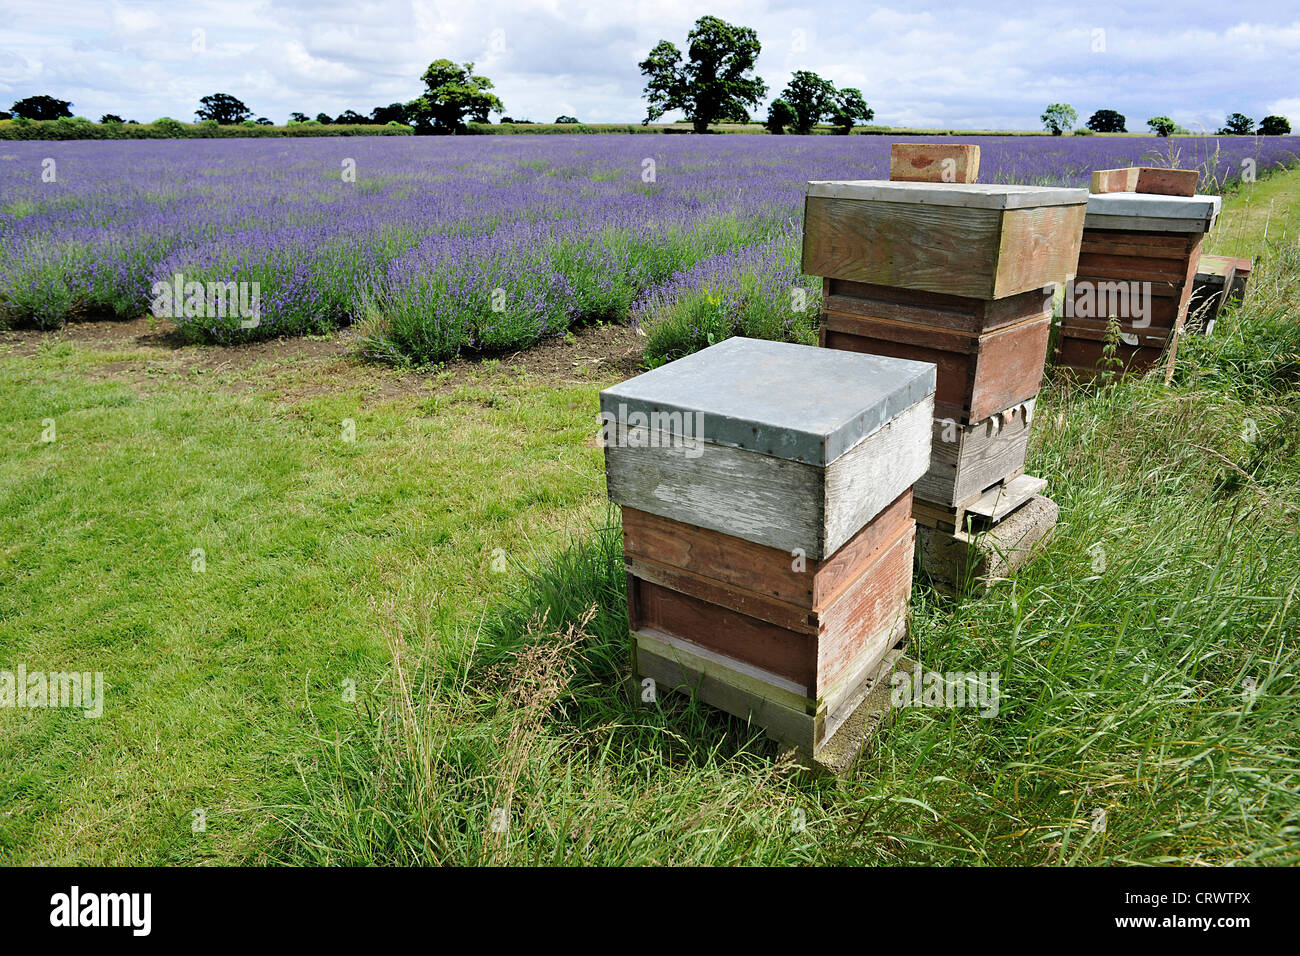 Bee hives on the edge of lavender field at Somerset Lavender Farm, Faulkland, Somerset. - Stock Image